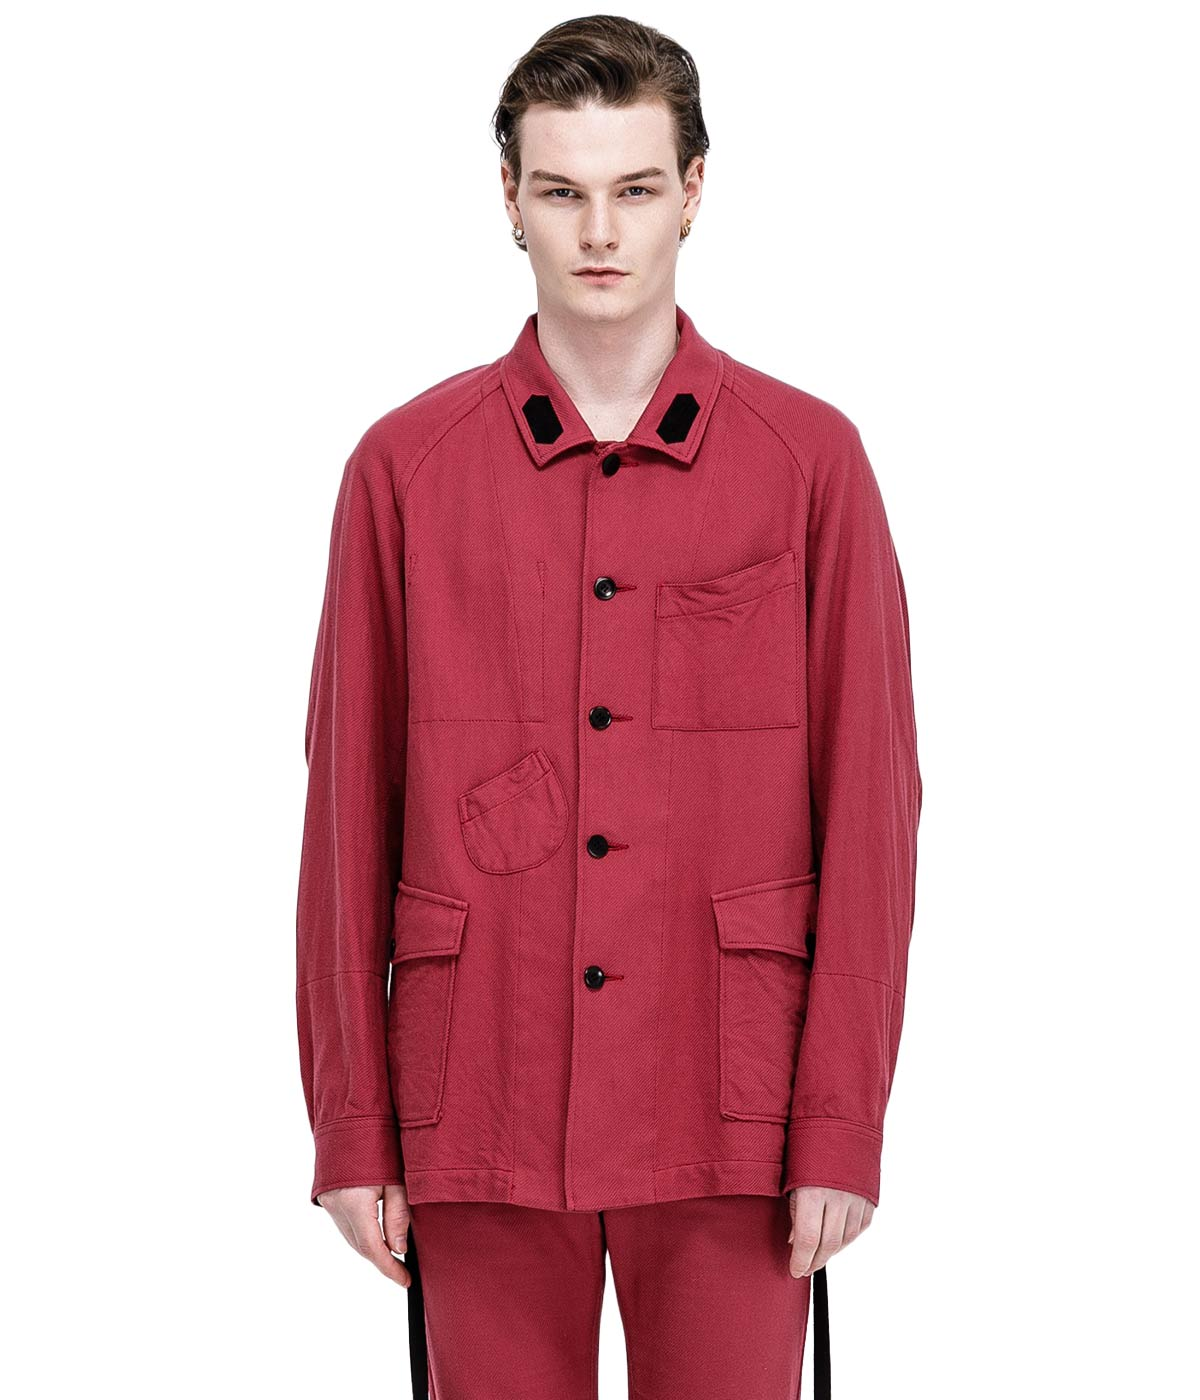 Red Twill Worker's Shirt